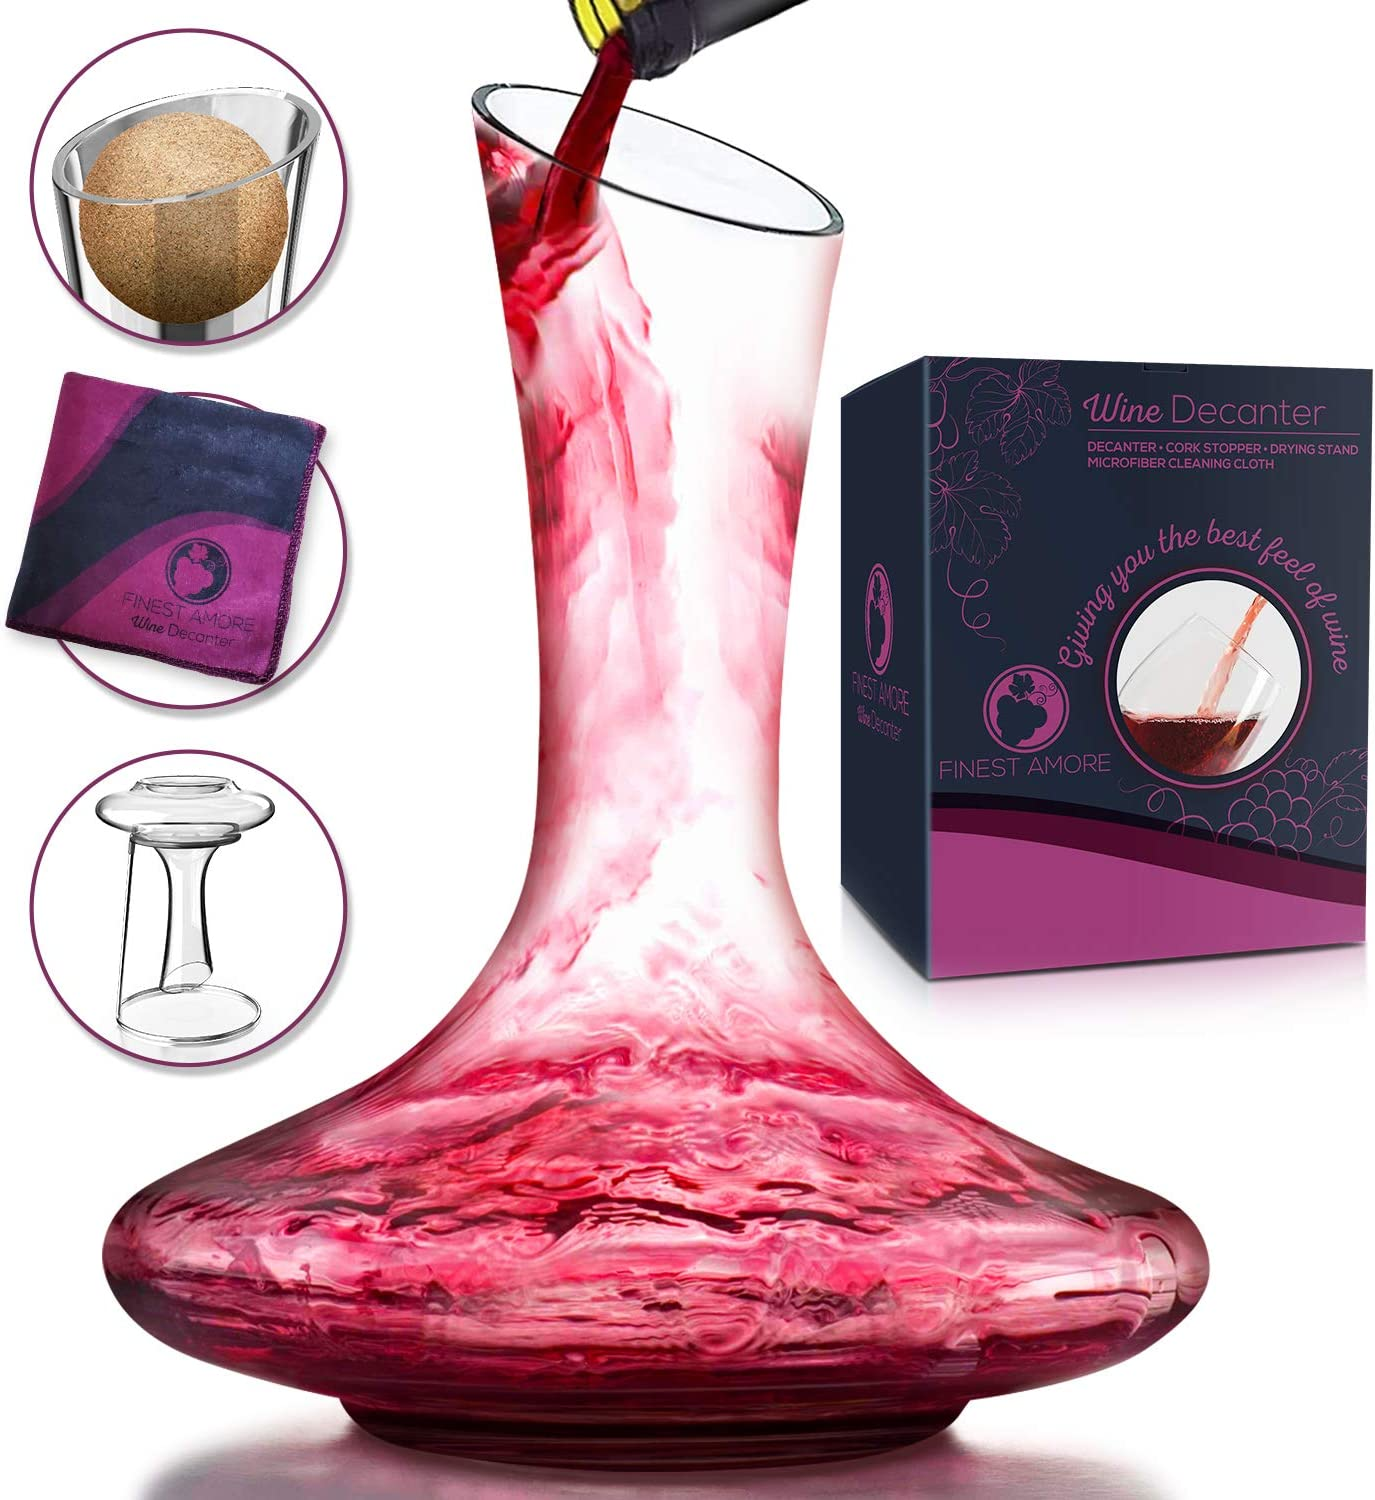 Finest Amore Glass Wine Decanter Set Hand Blown Lead Free Crystal Carafe With Cork Ball Stopper Drying Stand Cleaning Cloth Red Wine Decanter Wine Gift Wine Accessories Wine Decanters Amazon Com